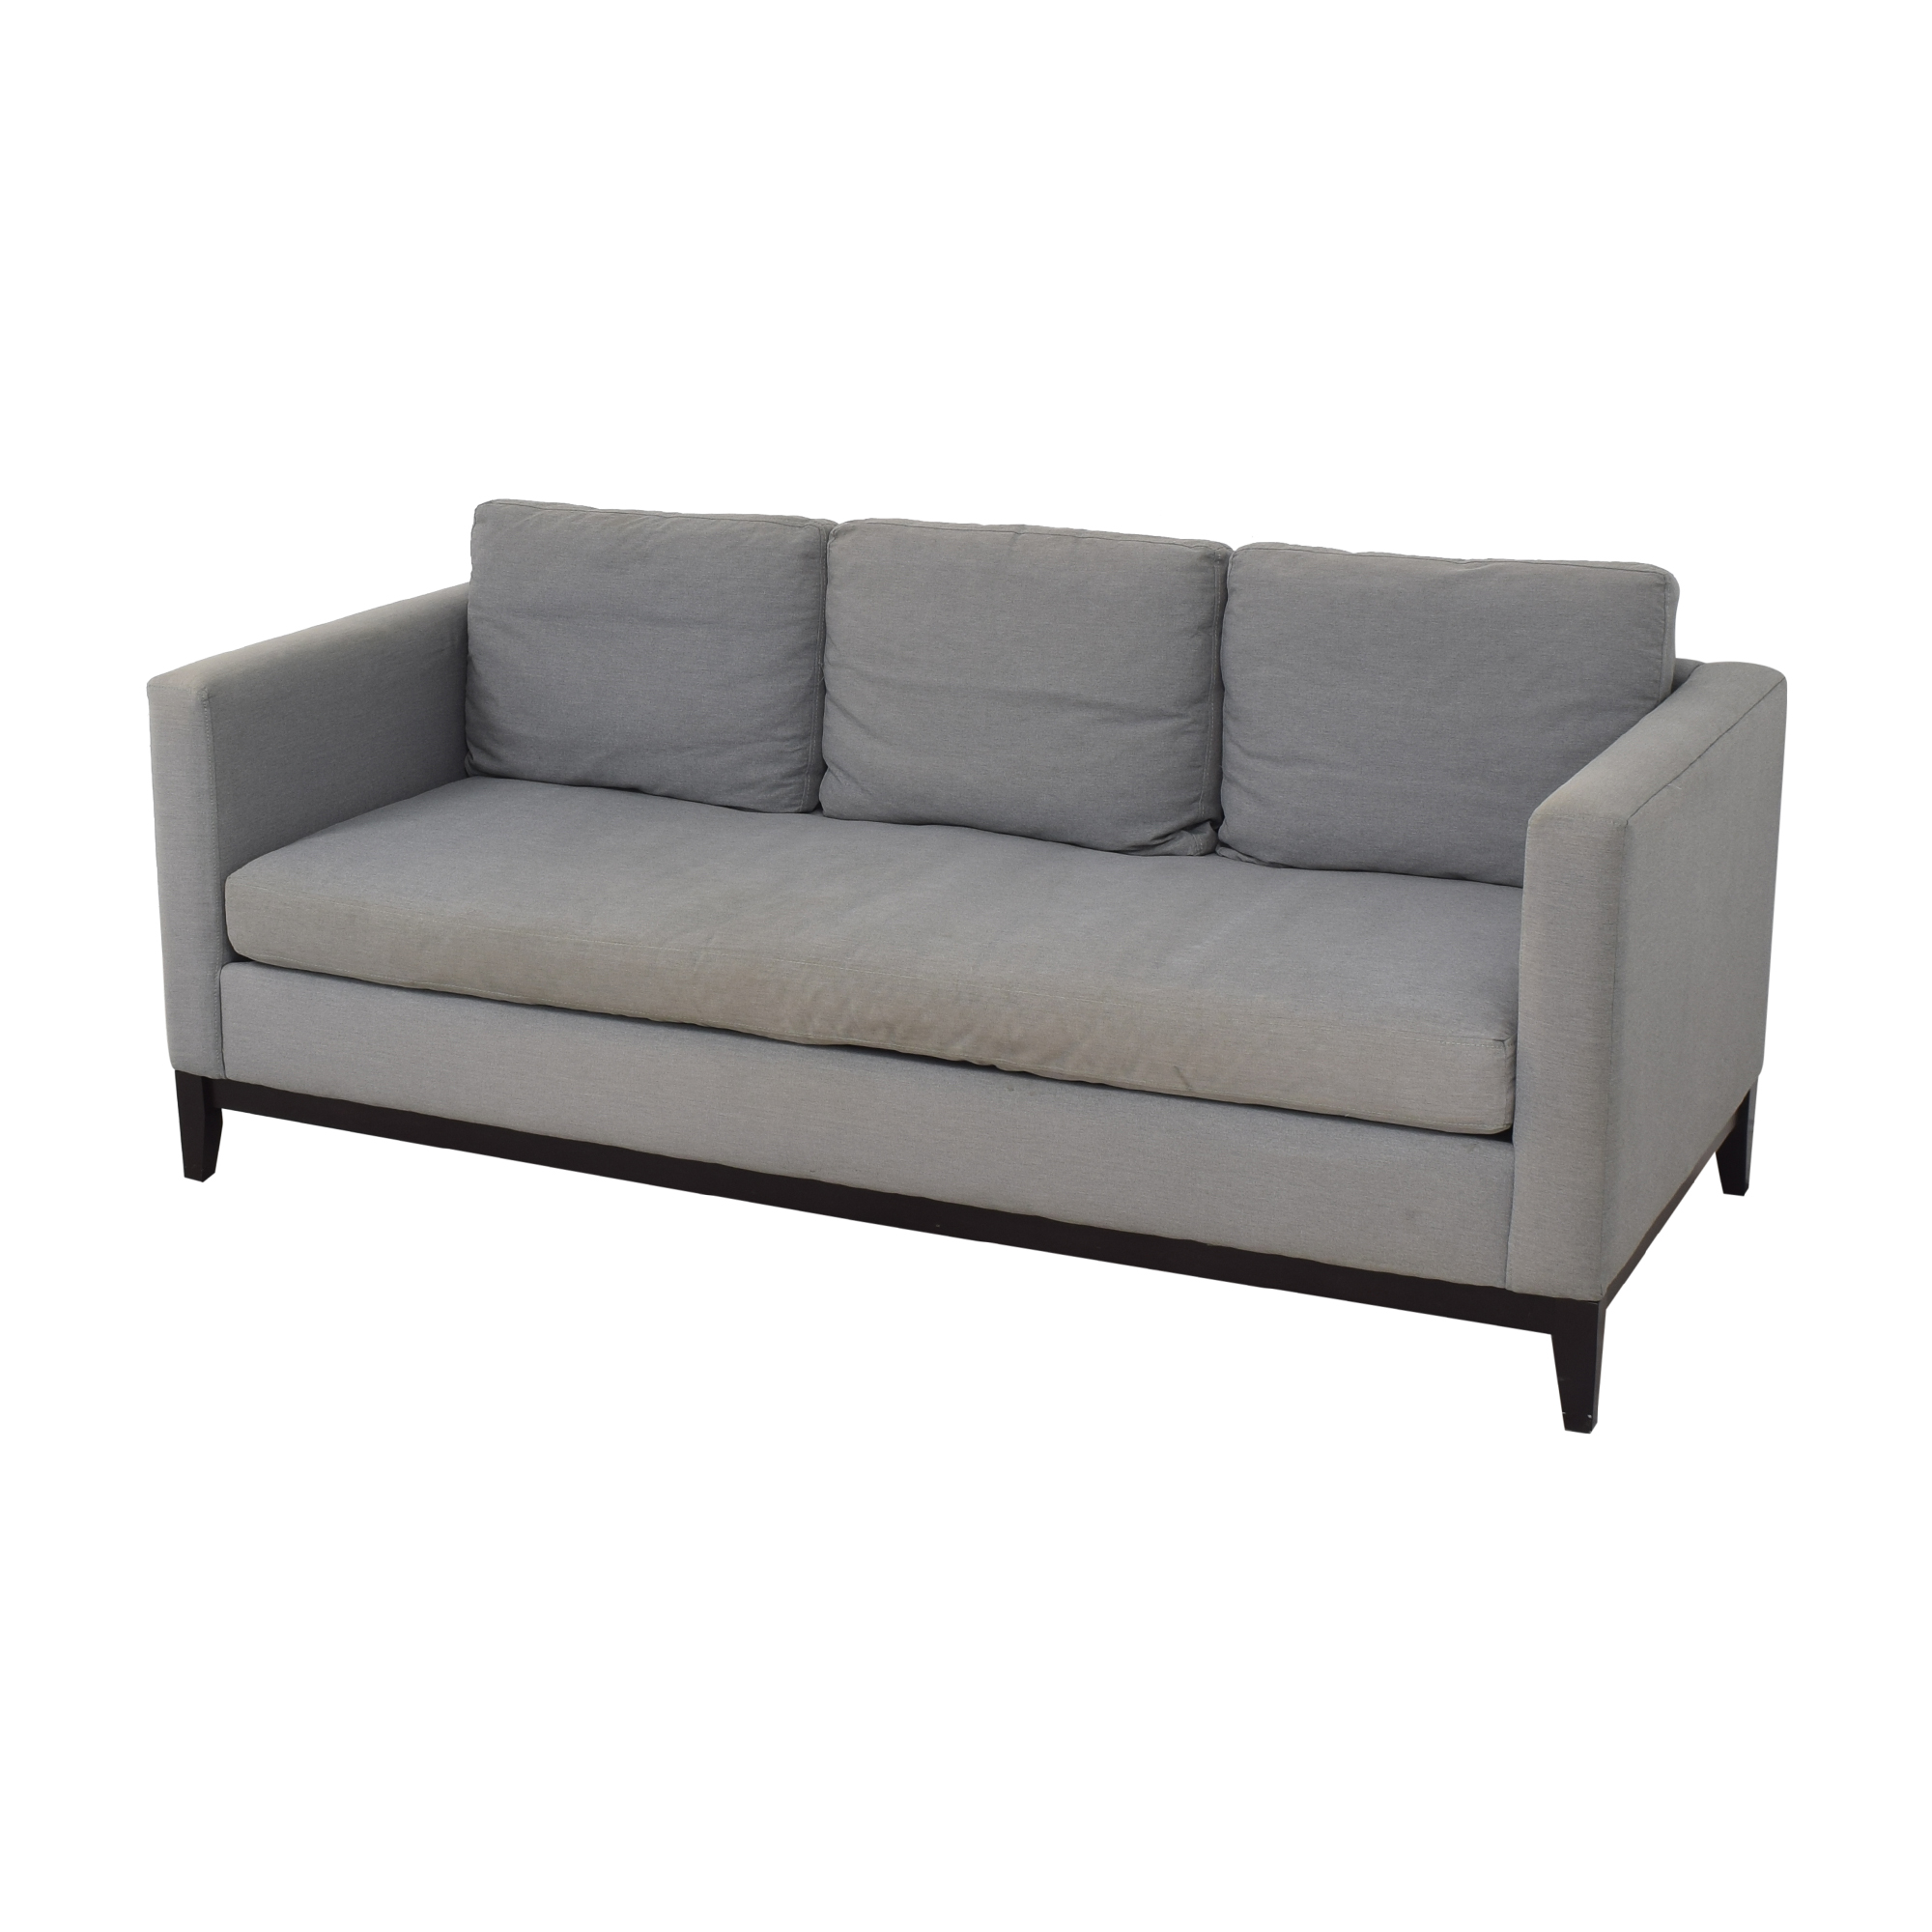 buy West Elm Blake Bench Cushion Sofa West Elm Sofas